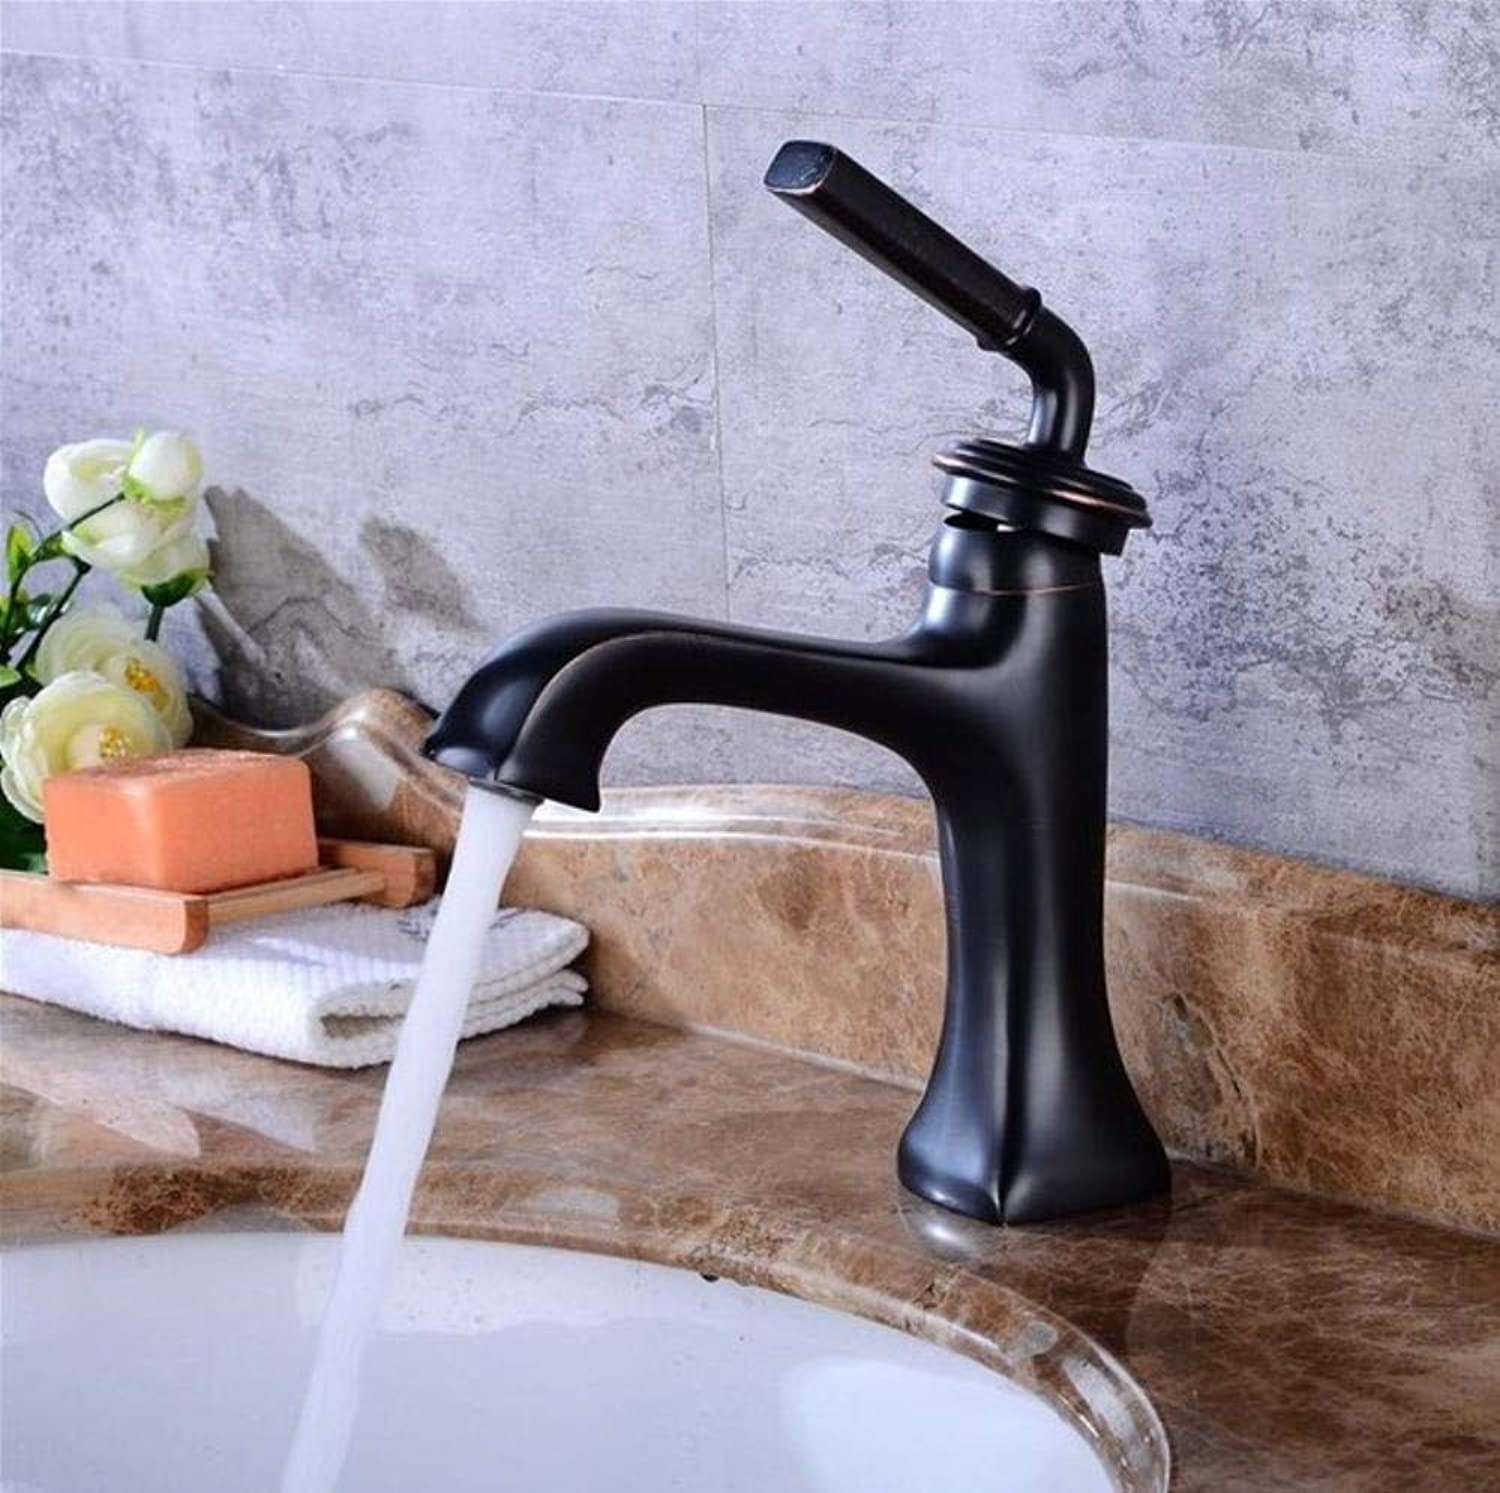 Kai&Guo brass Basin Faucet hot and cold Water Faucet black single lever Wash Faucet Crane bathroom sink faucet basin tap,short